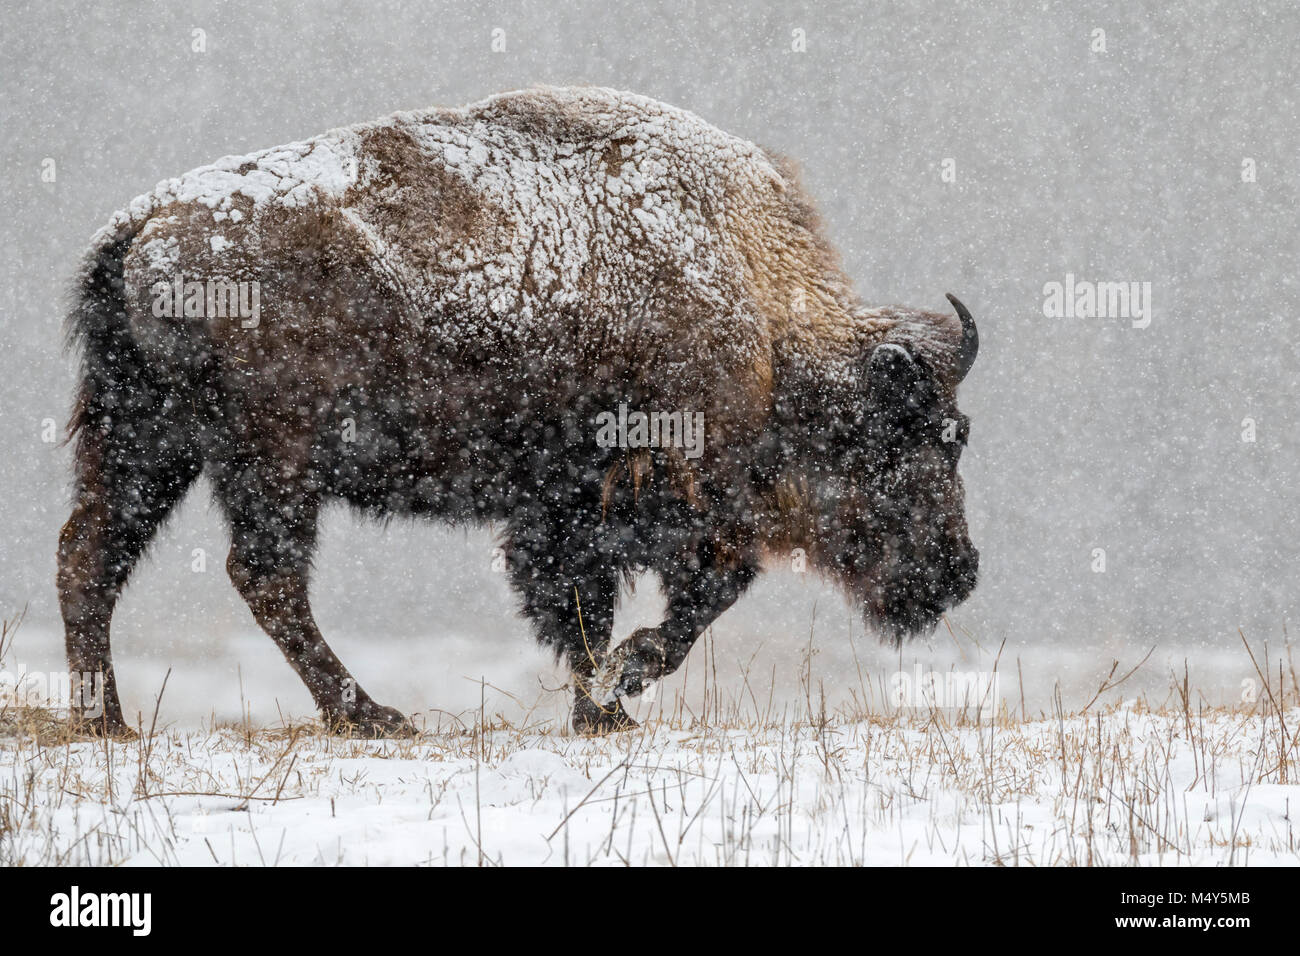 Male American bison (Bison bison) in prairie walking through a heavy snowstorm, Neal Smith National Wildlife Refuge, Stock Photo